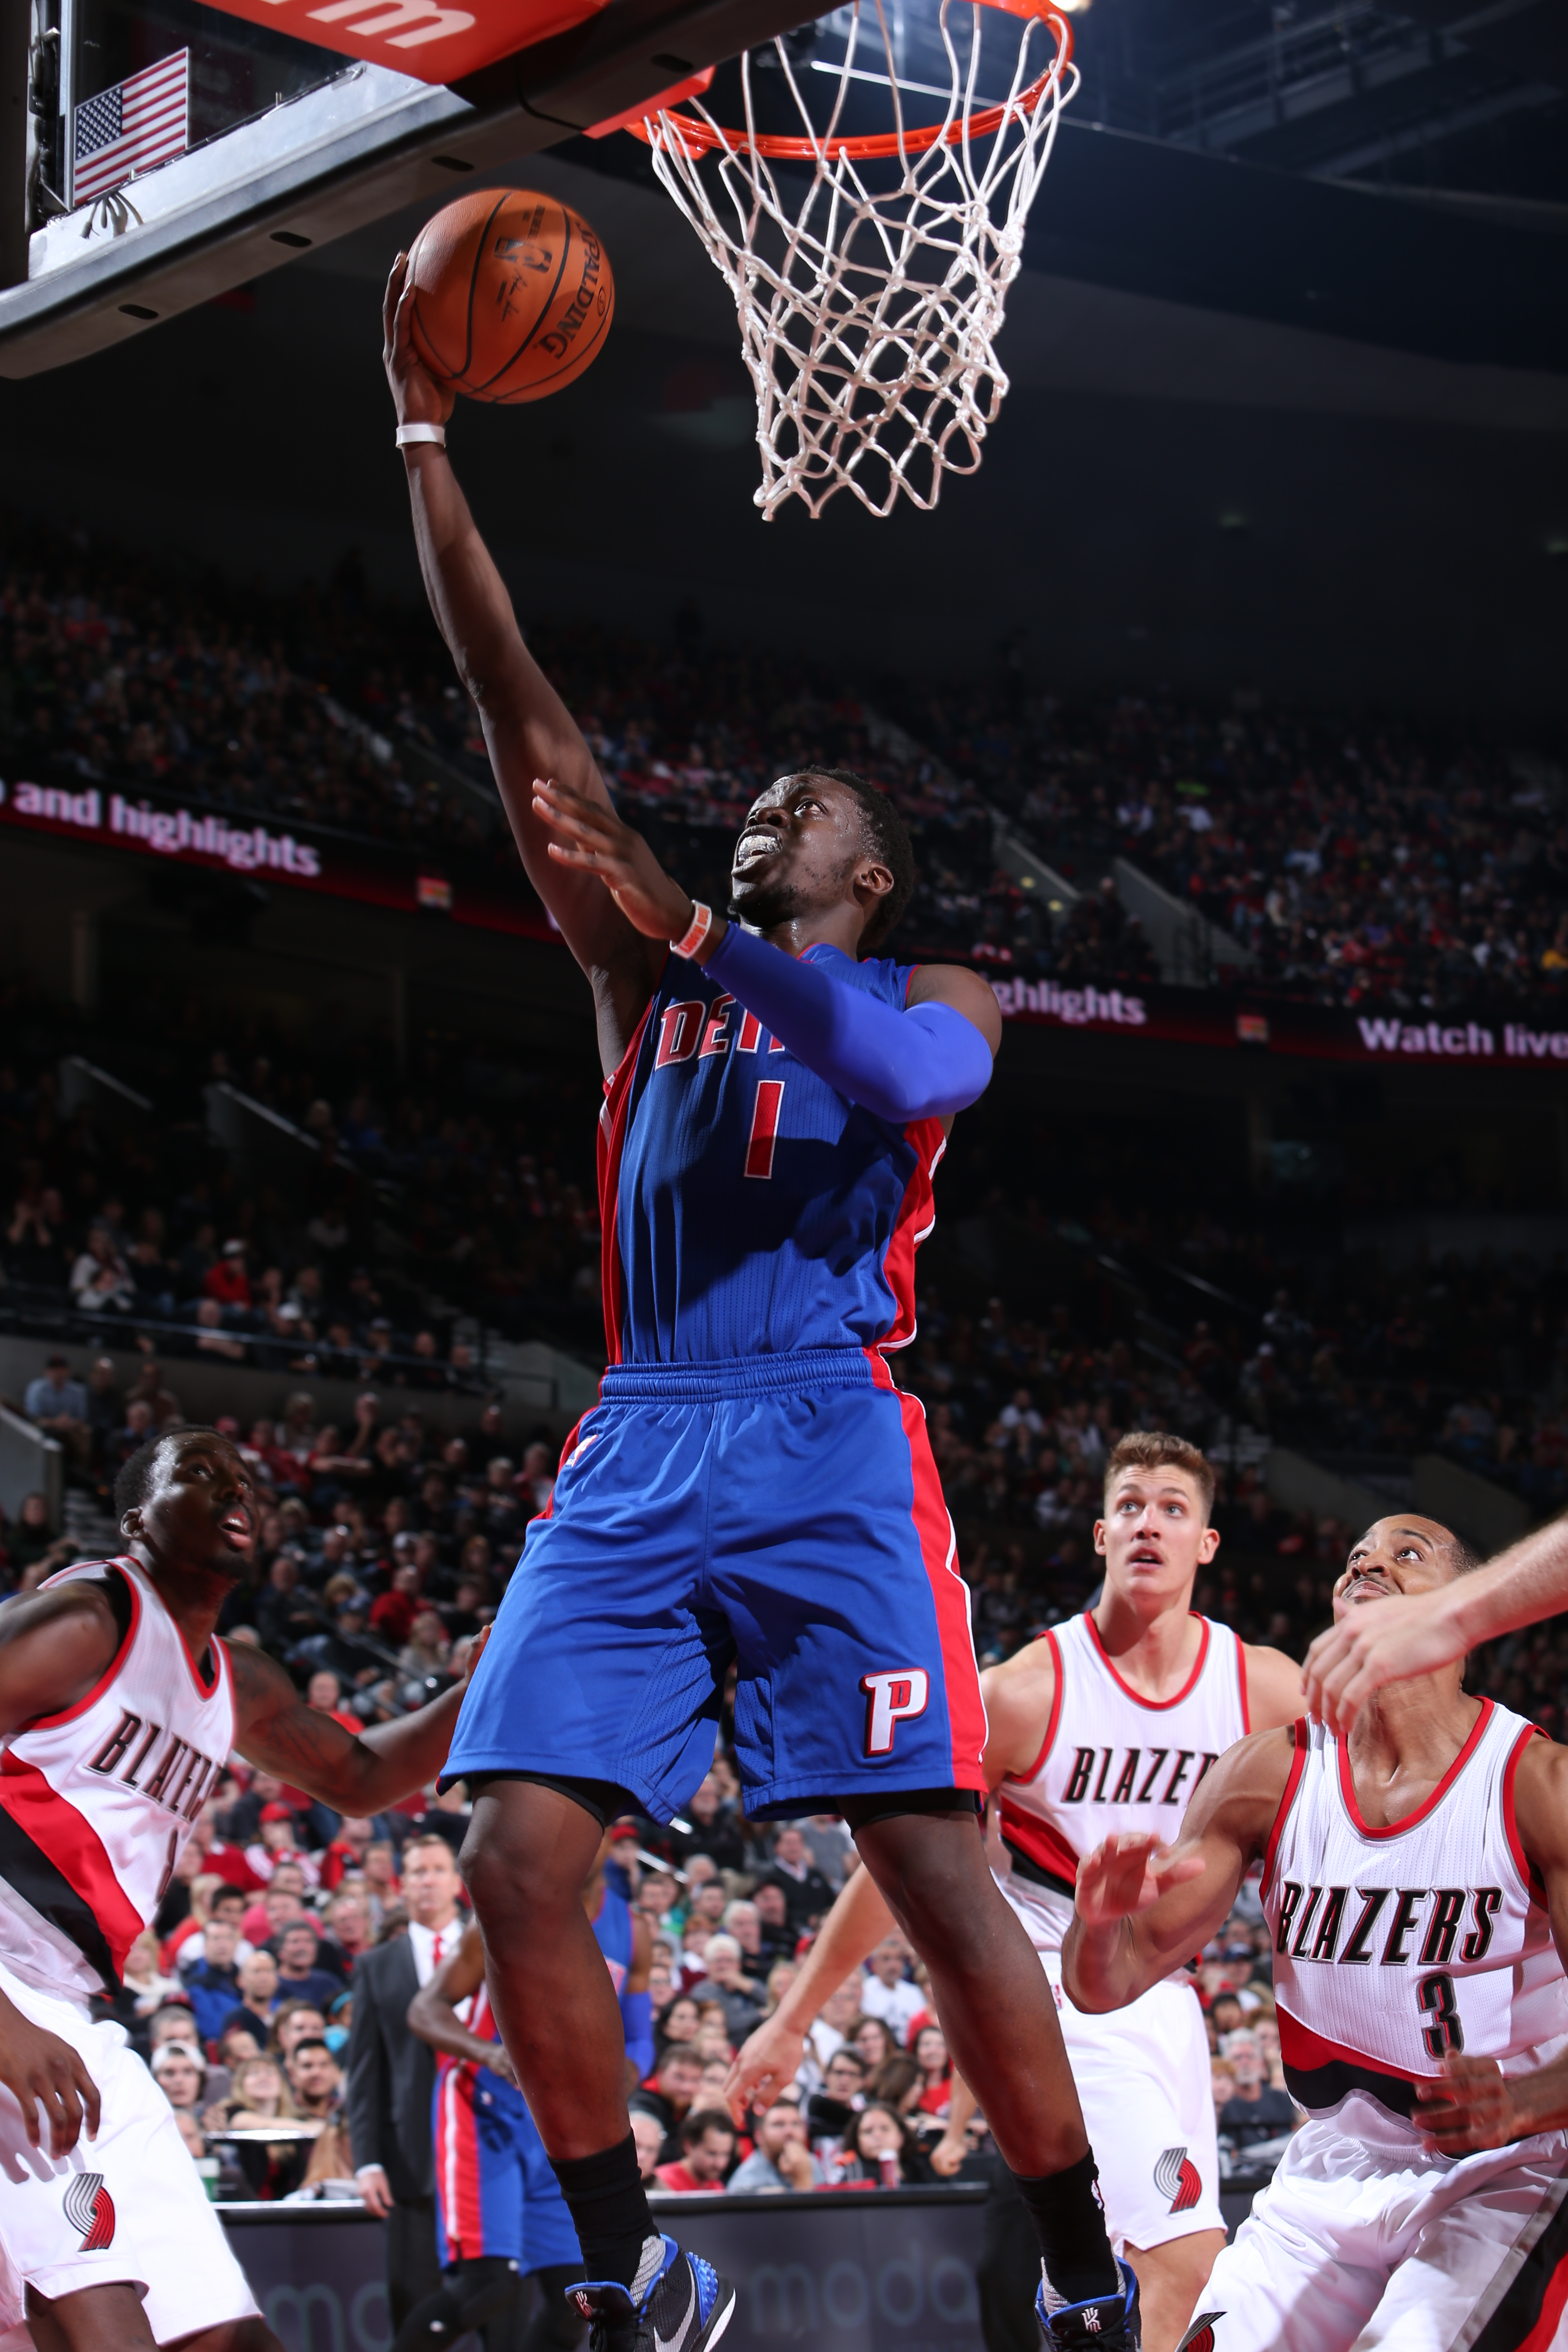 PORTLAND, OR - NOVEMBER 8:  Reggie Jackson #1 of the Detroit Pistons goes to the basket against the Portland Trail Blazers on November 8, 2015 at the Moda Center in Portland, Oregon. (Photo by Sam Forencich/NBAE via Getty Images)